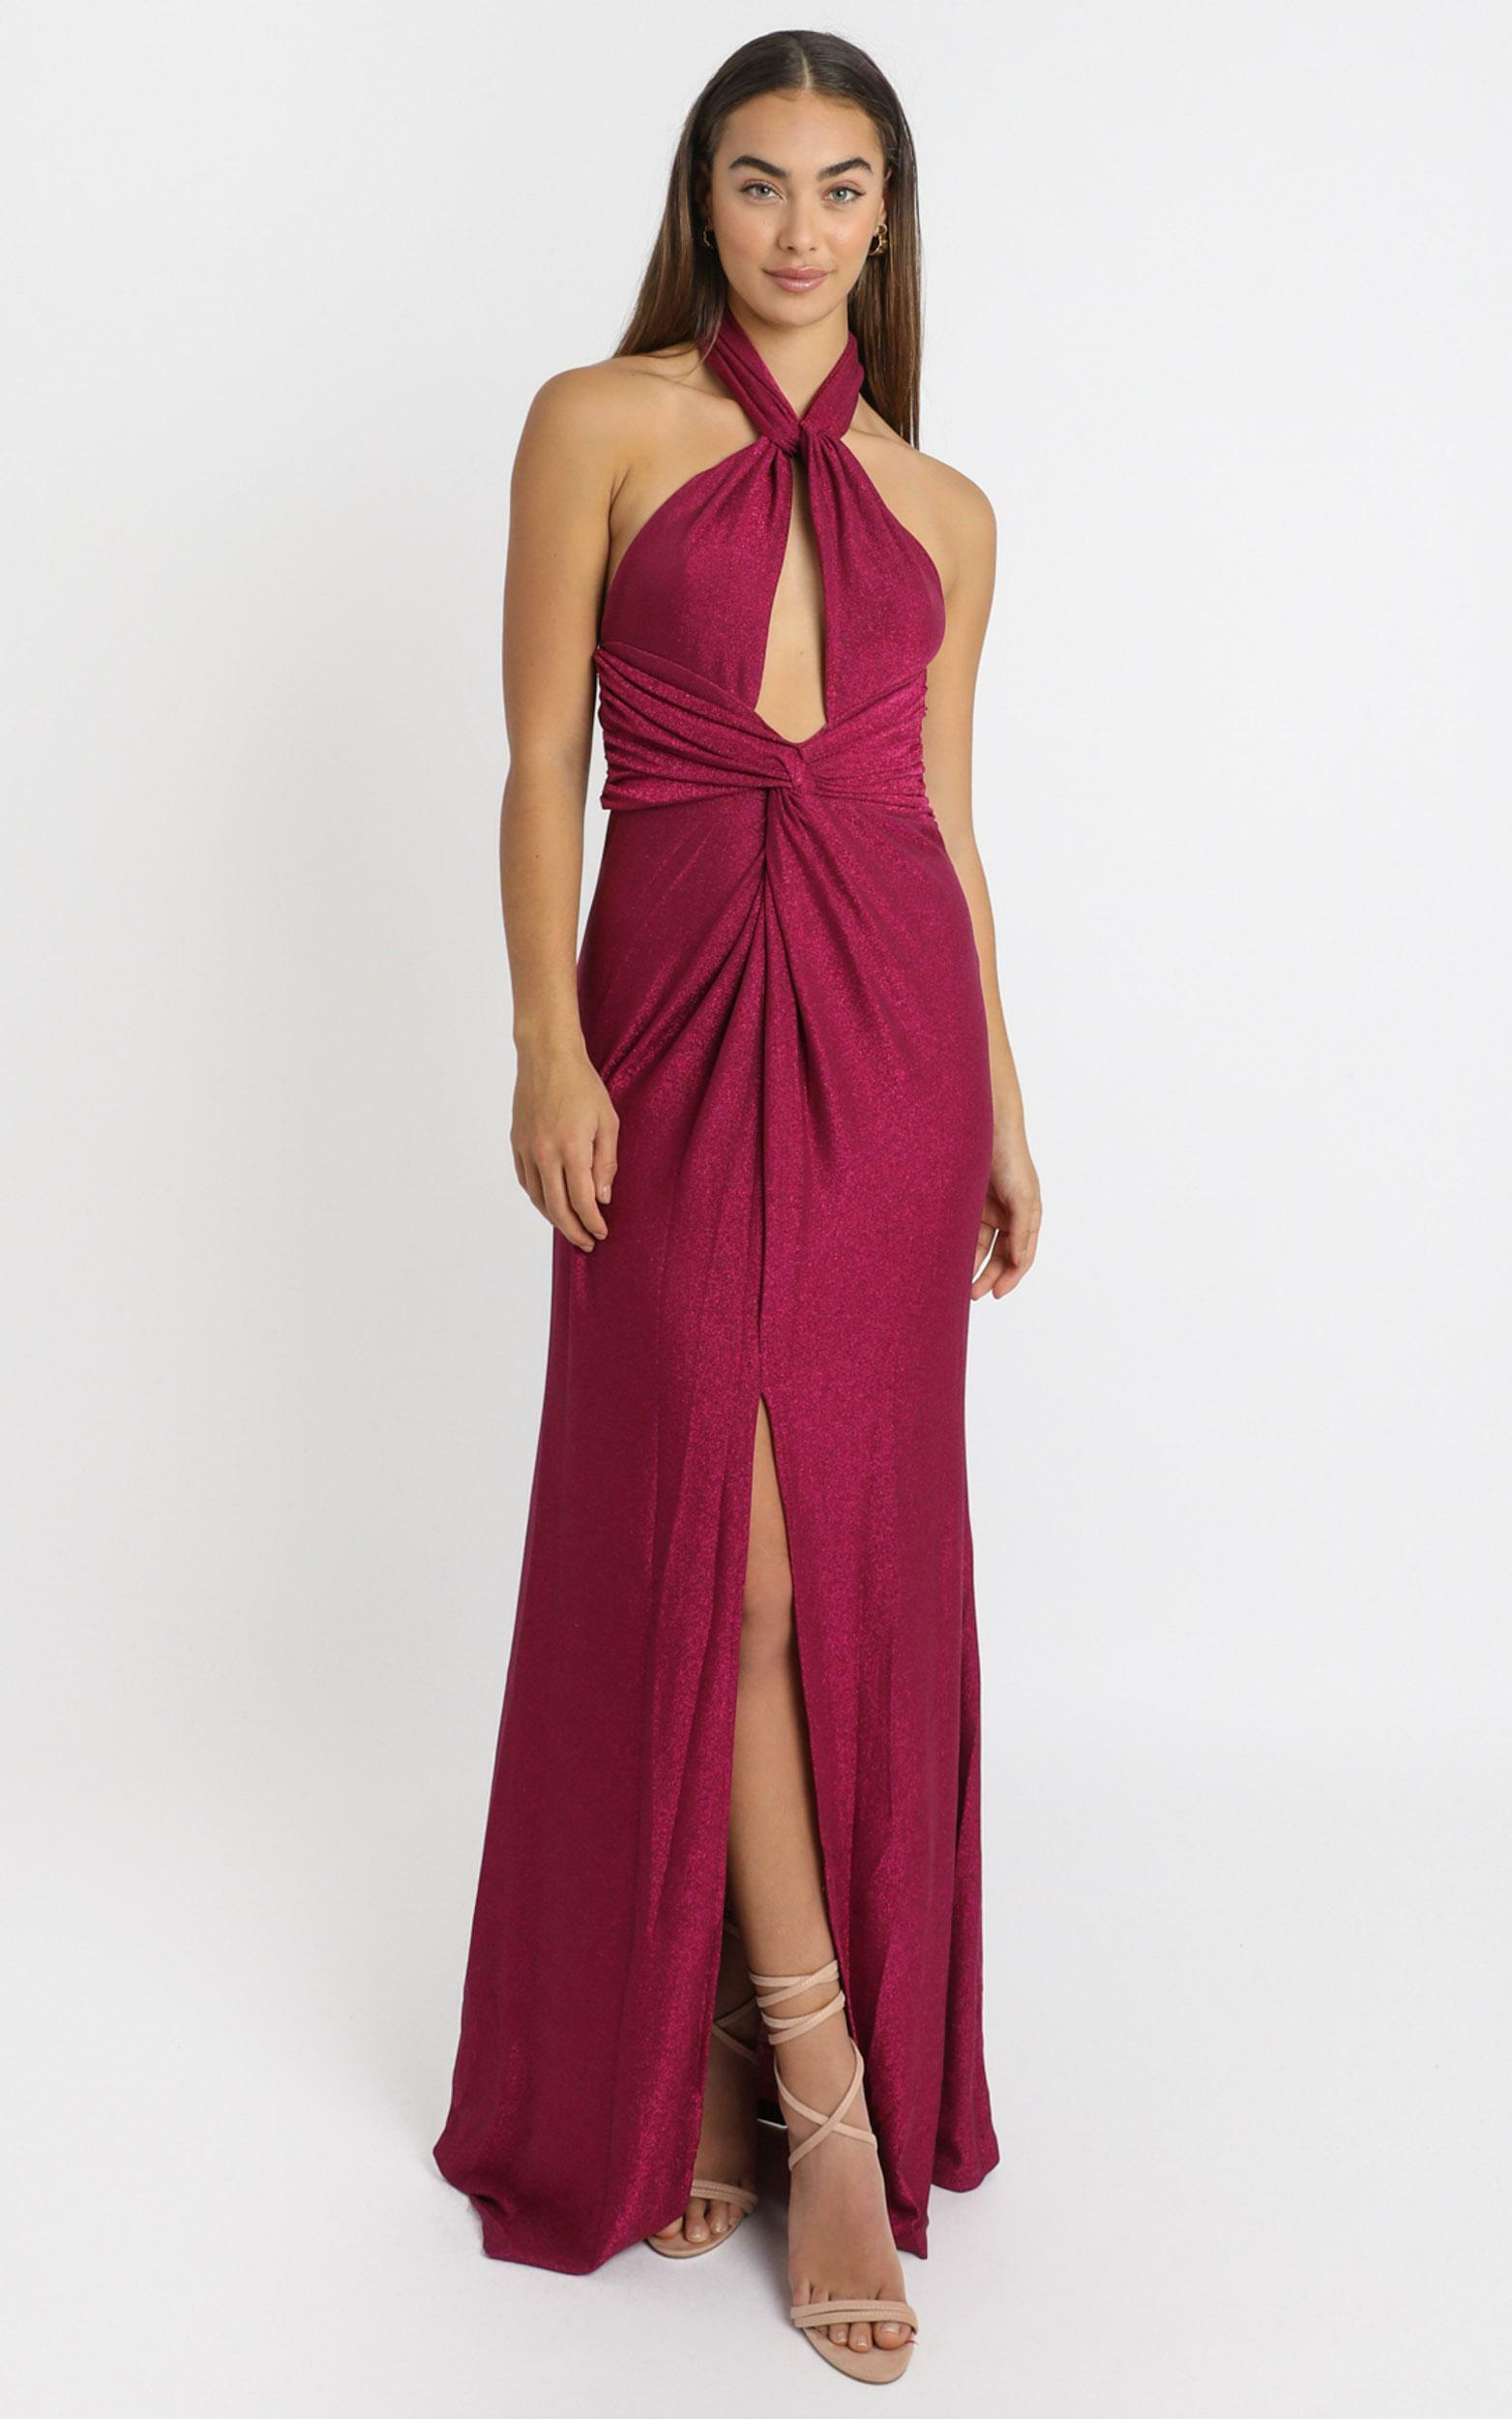 Ensley Twist Front Maxi Dress in pink glitter - 6 (XS), Pink, hi-res image number null